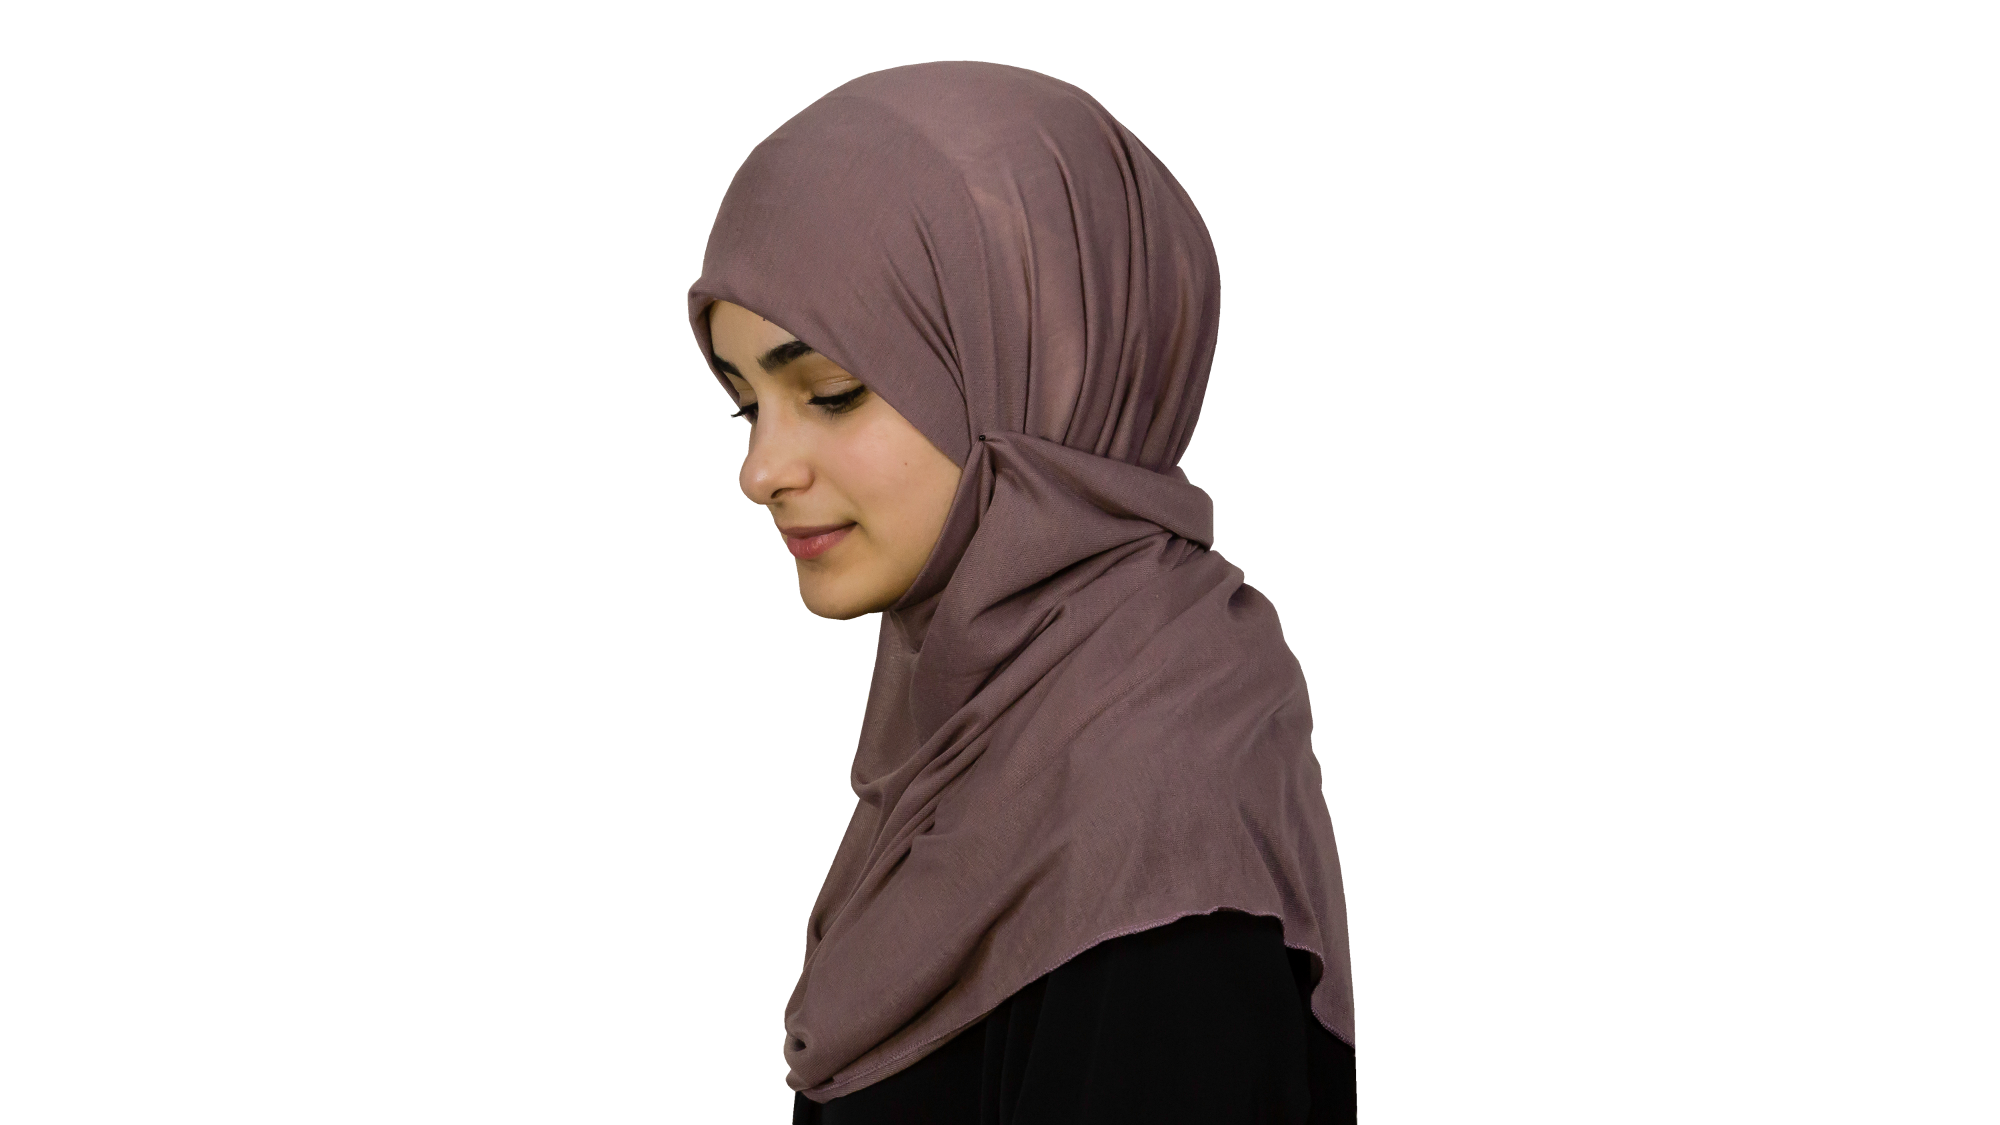 Jersey orchid hijab